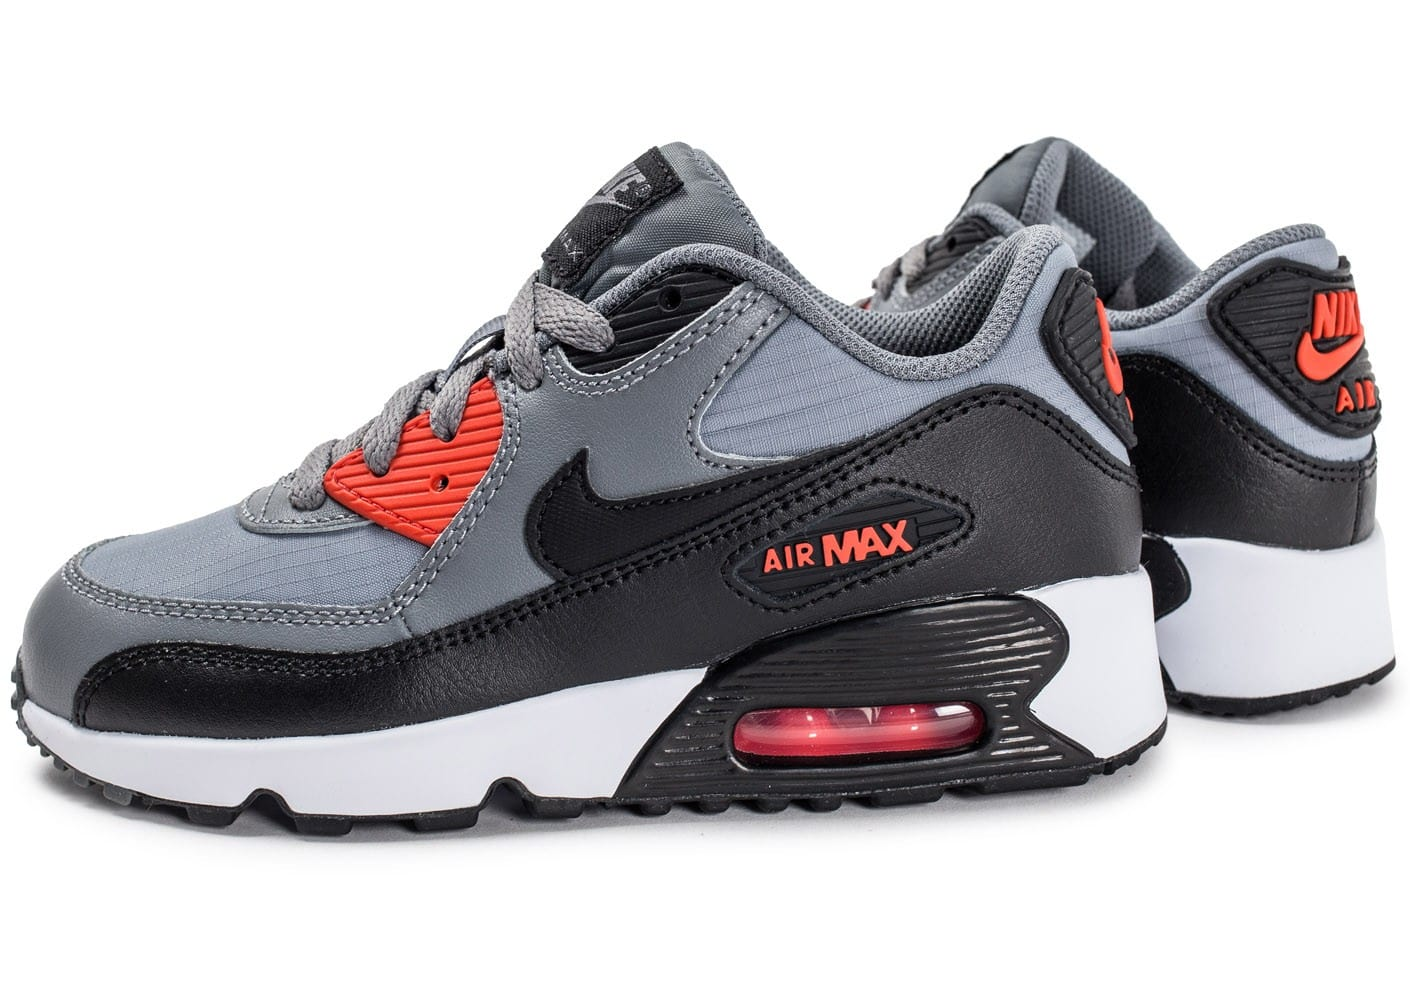 soldes nike air max 90 mesh enfant grise chaussures toutes les baskets sold es chausport. Black Bedroom Furniture Sets. Home Design Ideas